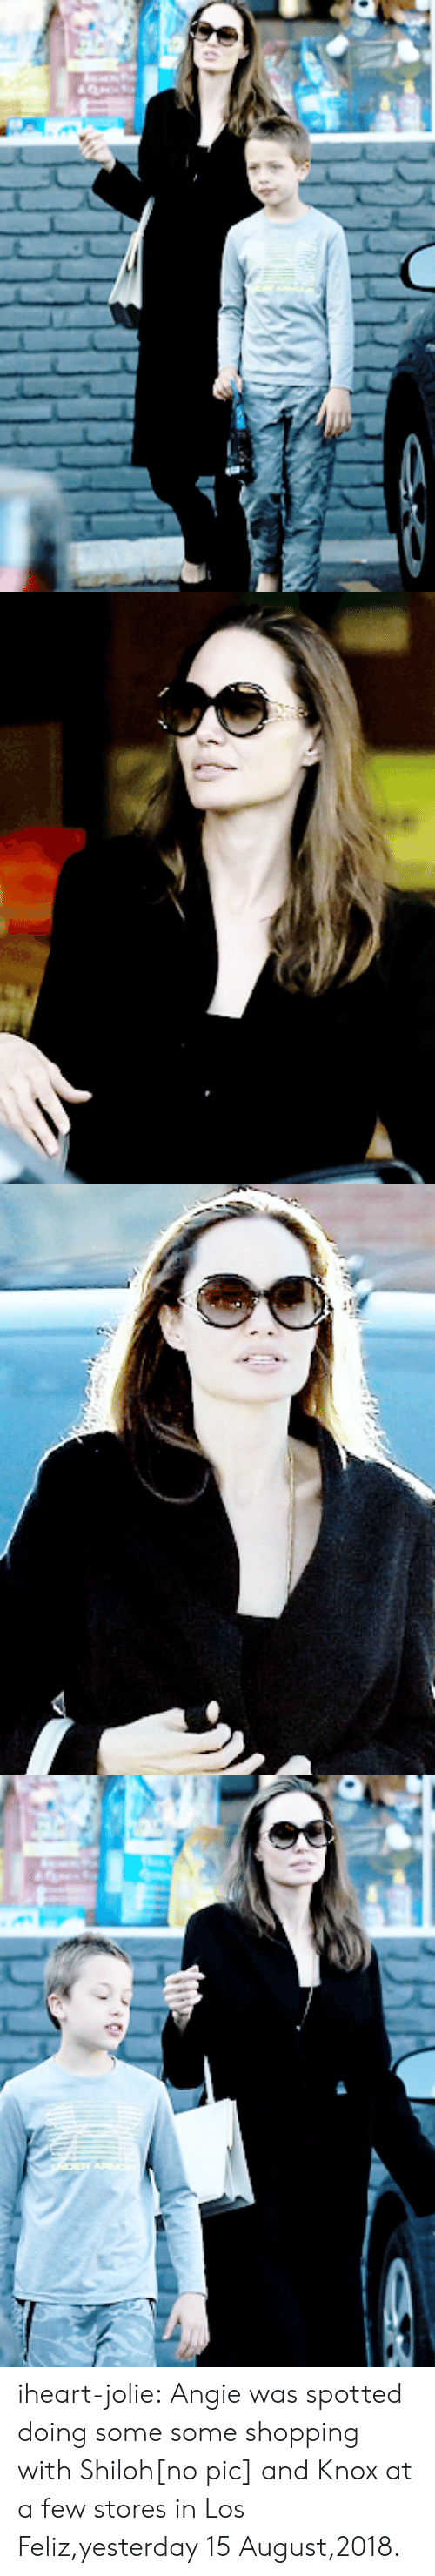 Shopping, Tumblr, and Blog: iheart-jolie:    Angie was spotted doing some some shopping with Shiloh[no pic] and Knox at a few stores in Los Feliz,yesterday 15 August,2018.